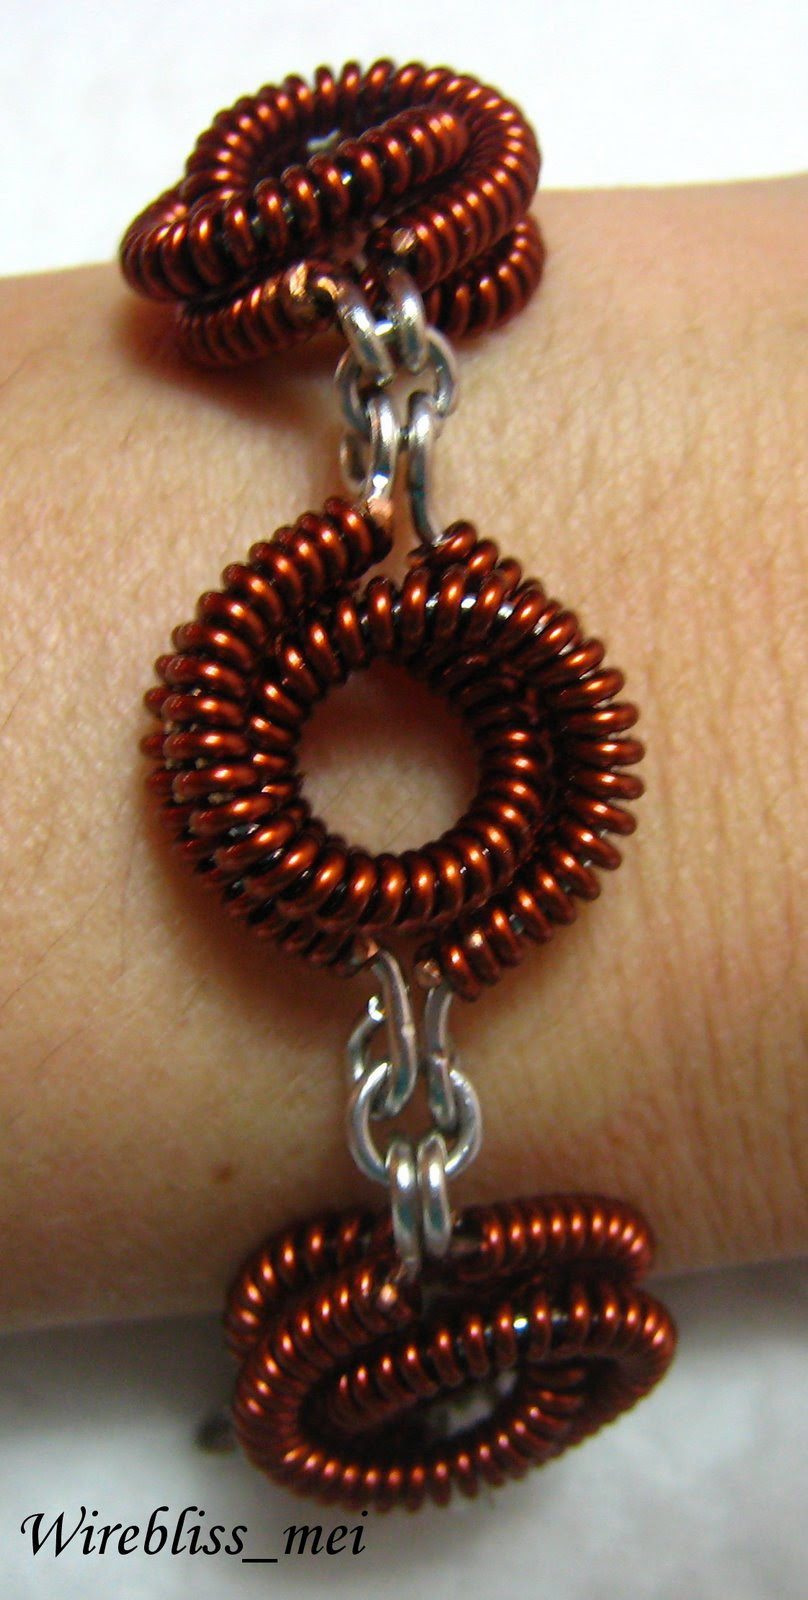 Wire wrap copper bracelet around wrist